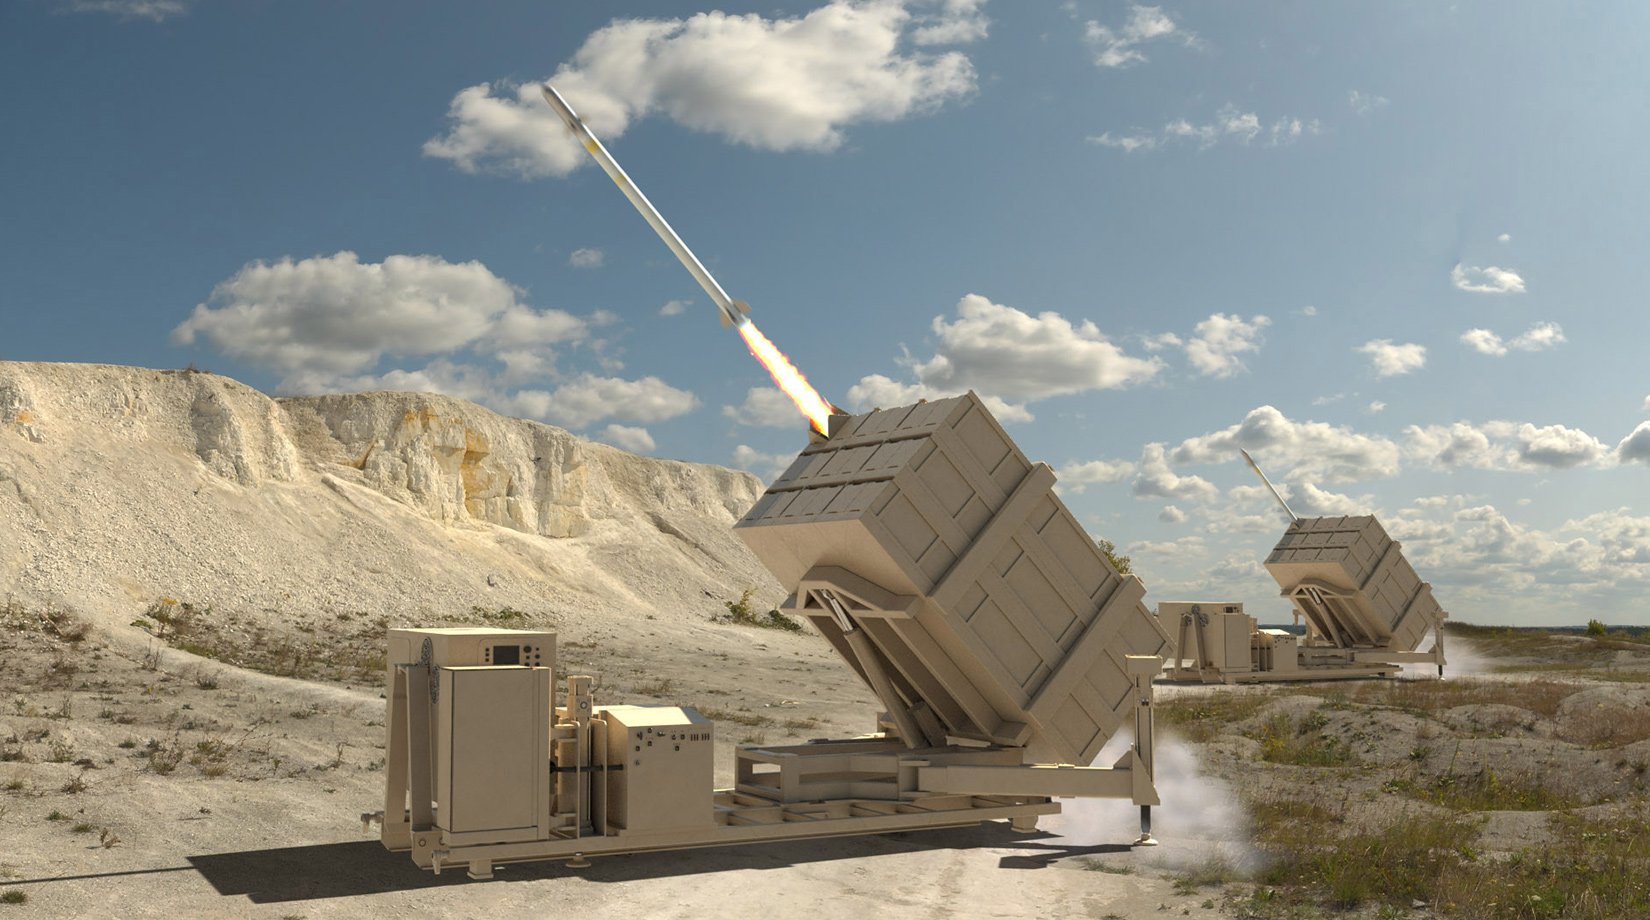 Enduring Shield is designed to engage not only enemy cruise missiles but enemy drones as well.